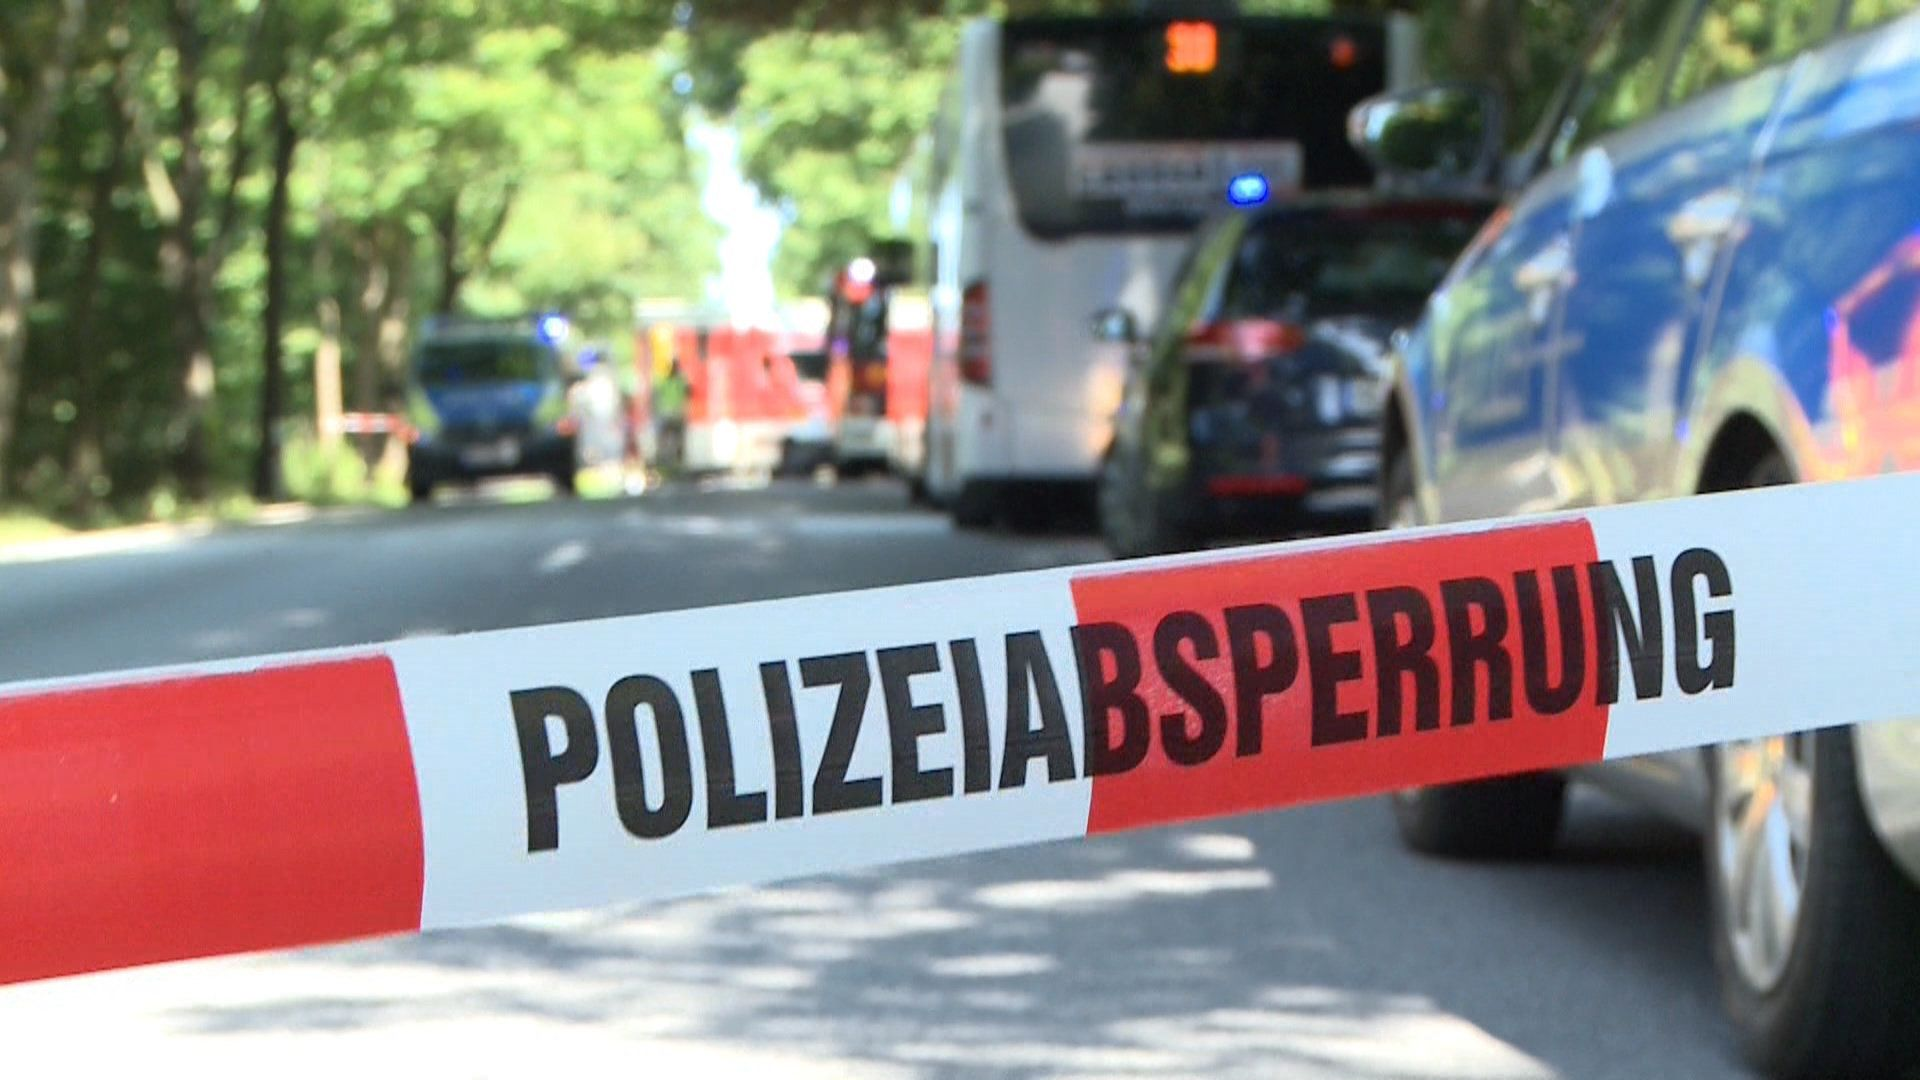 Knife Attack On Busy Bus In Germany Leaves At Least 14 Wounded